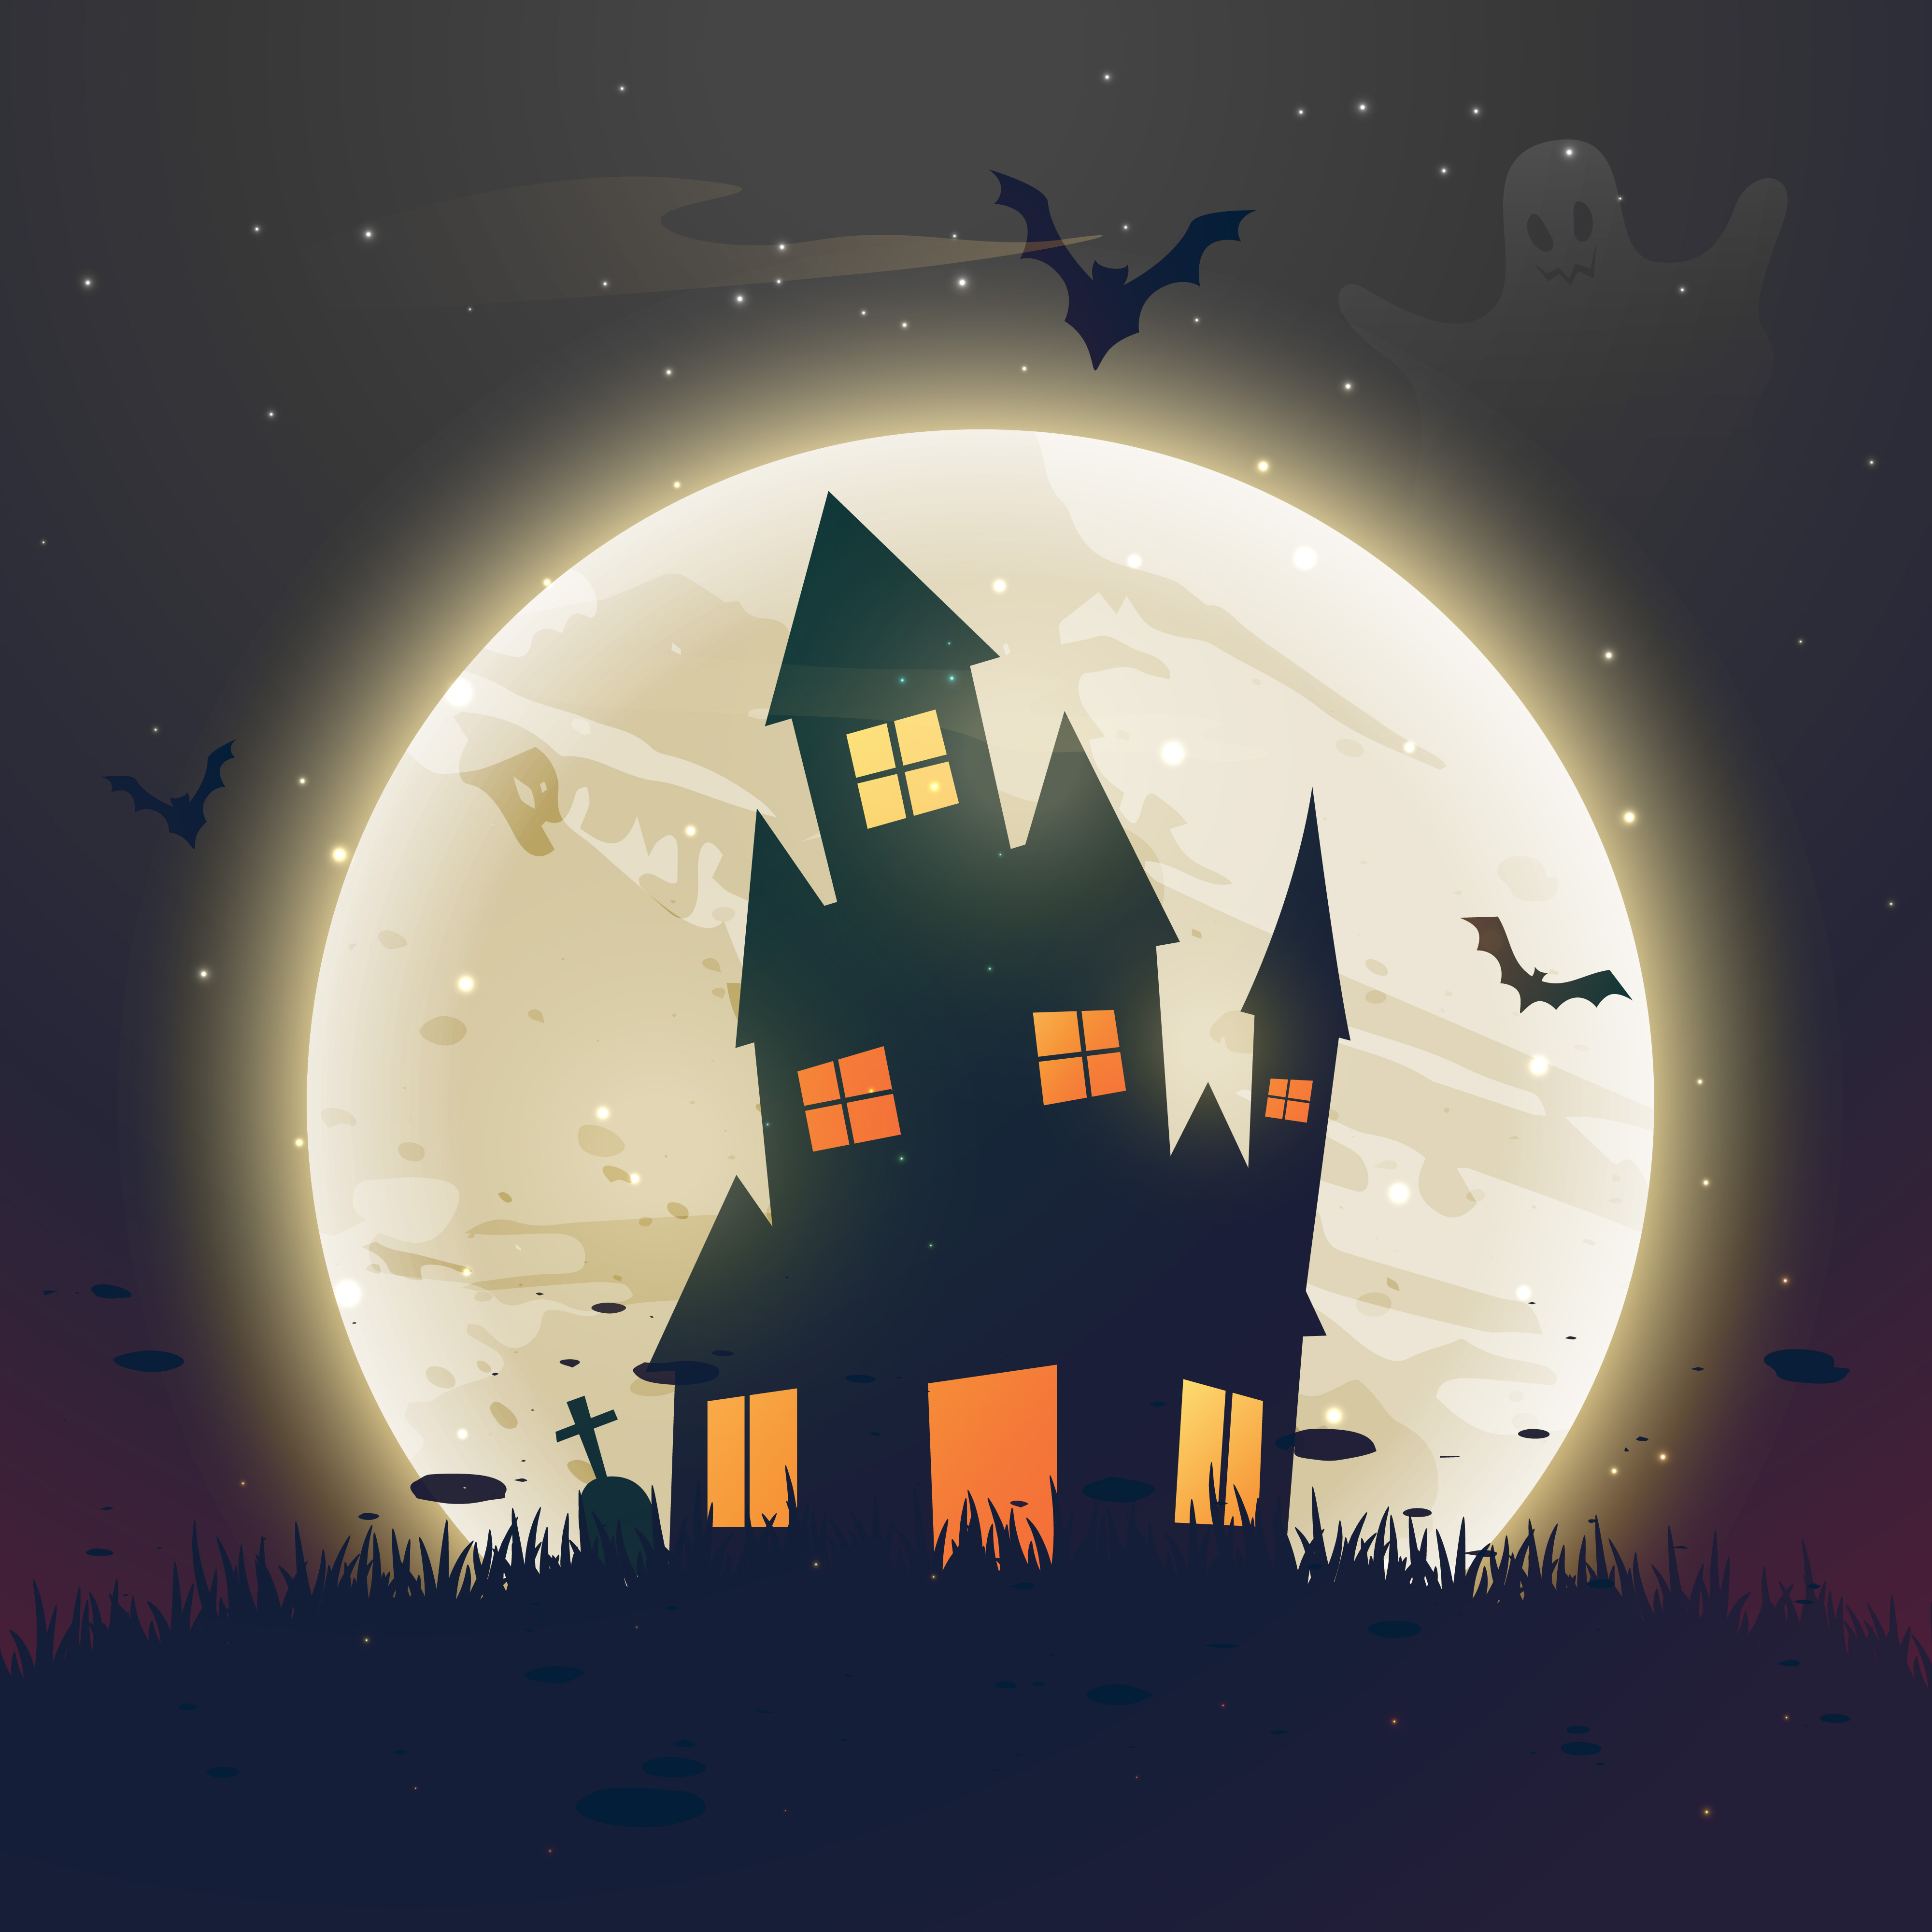 Scary Haunted Halloween House In Front Of Moon Download Free Vector Art Stock Graphics Images